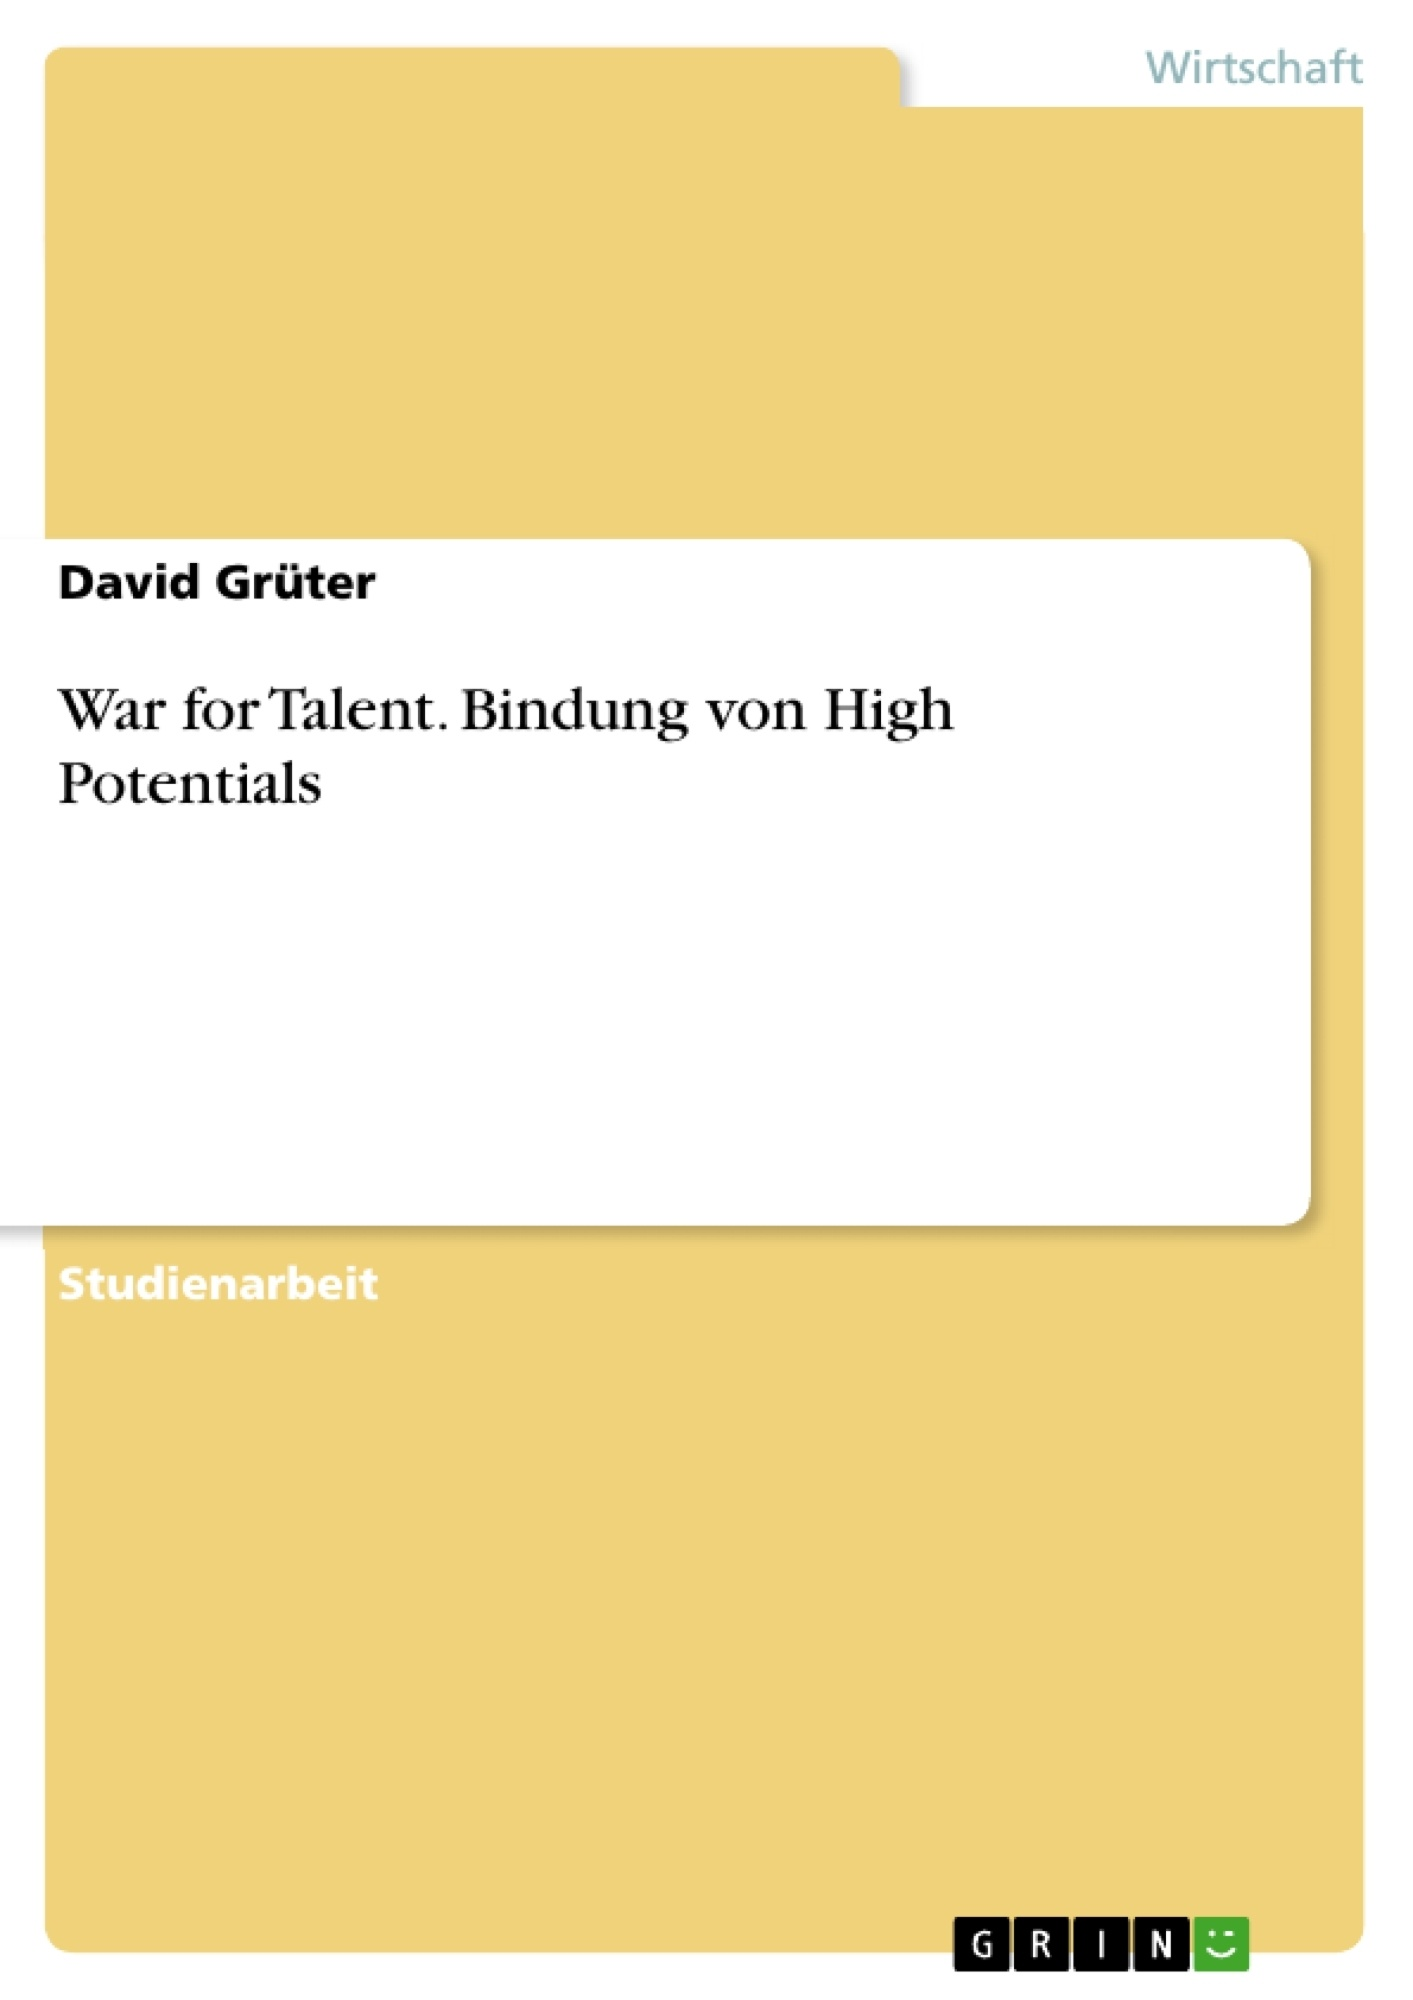 Titel: War for Talent. Bindung von High Potentials